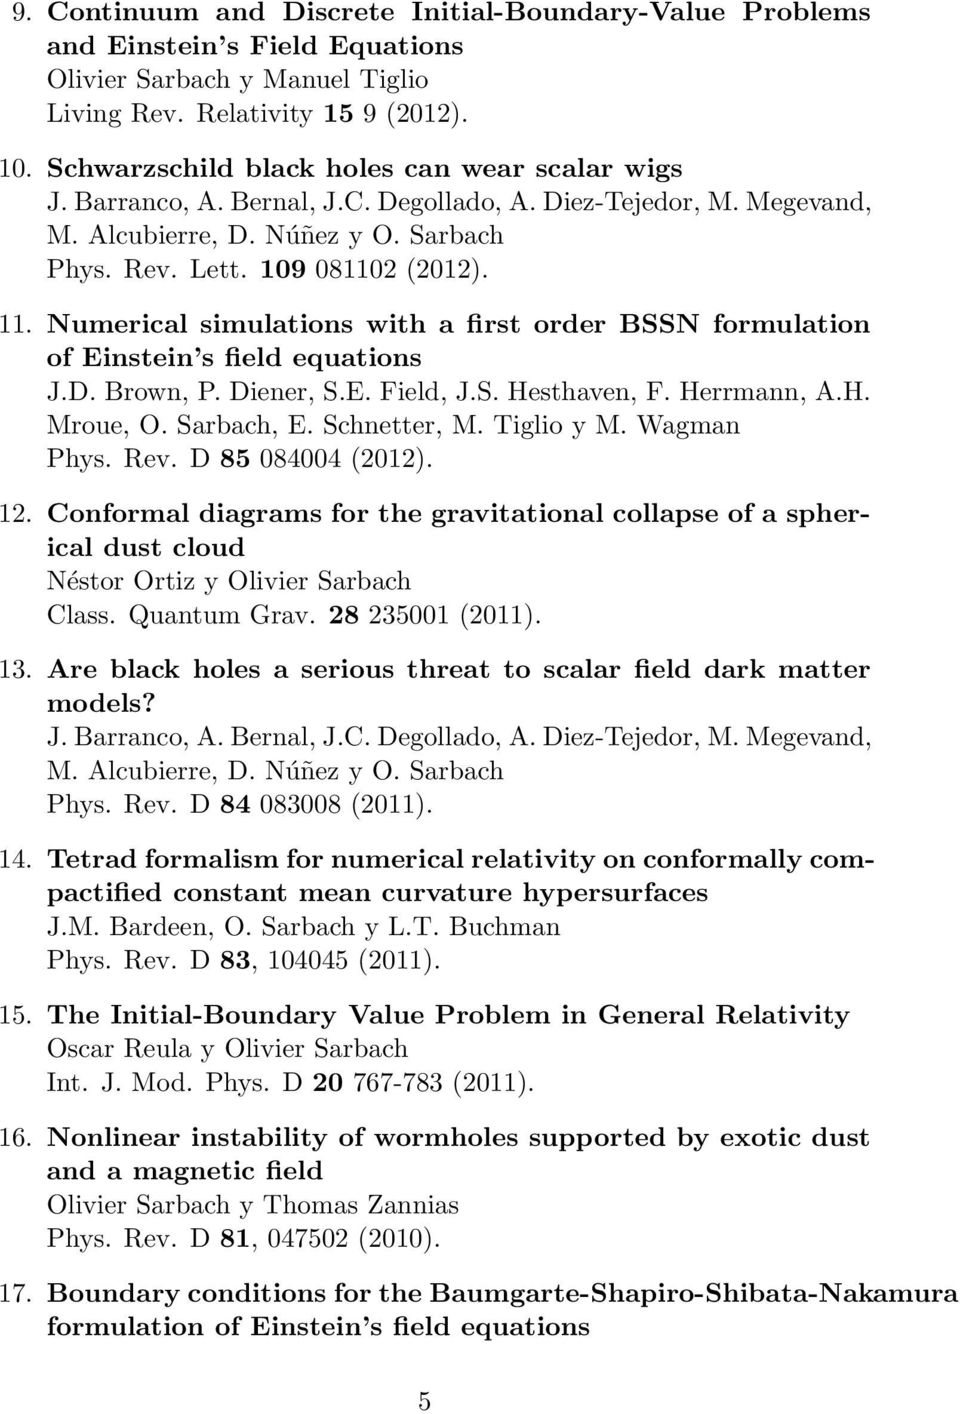 Numerical simulations with a first order BSSN formulation of Einstein s field equations J.D. Brown, P. Diener, S.E. Field, J.S. Hesthaven, F. Herrmann, A.H. Mroue, O. Sarbach, E. Schnetter, M.